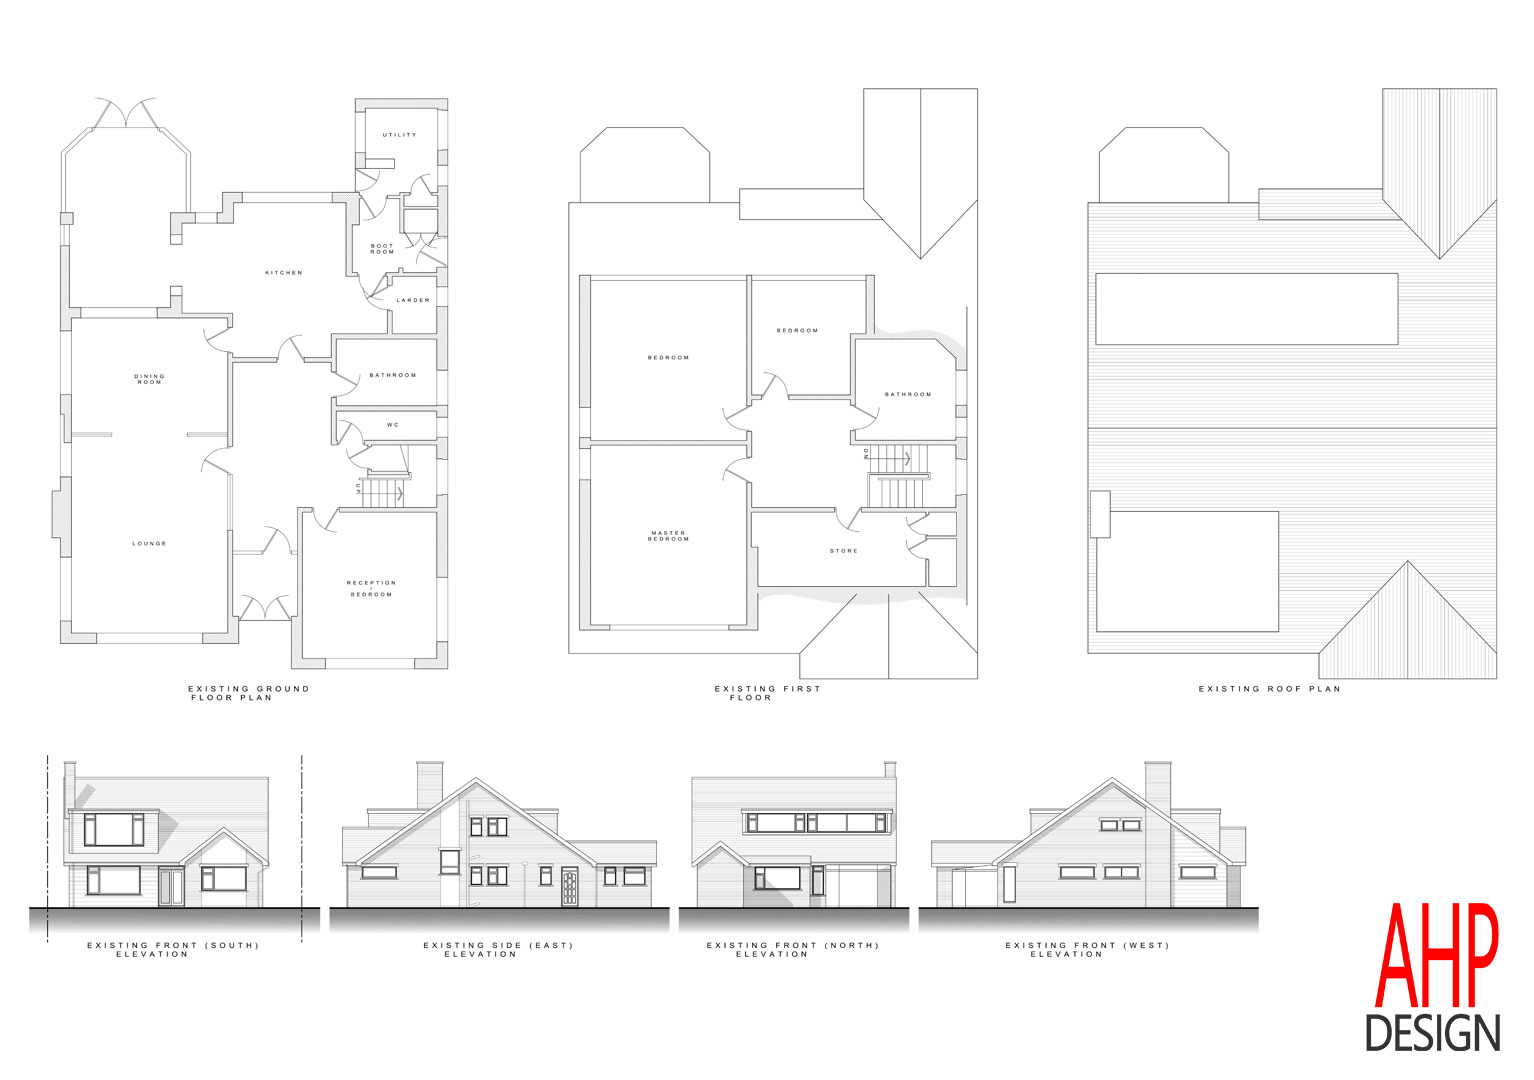 4 bedroom bungalow blackpool existing plans